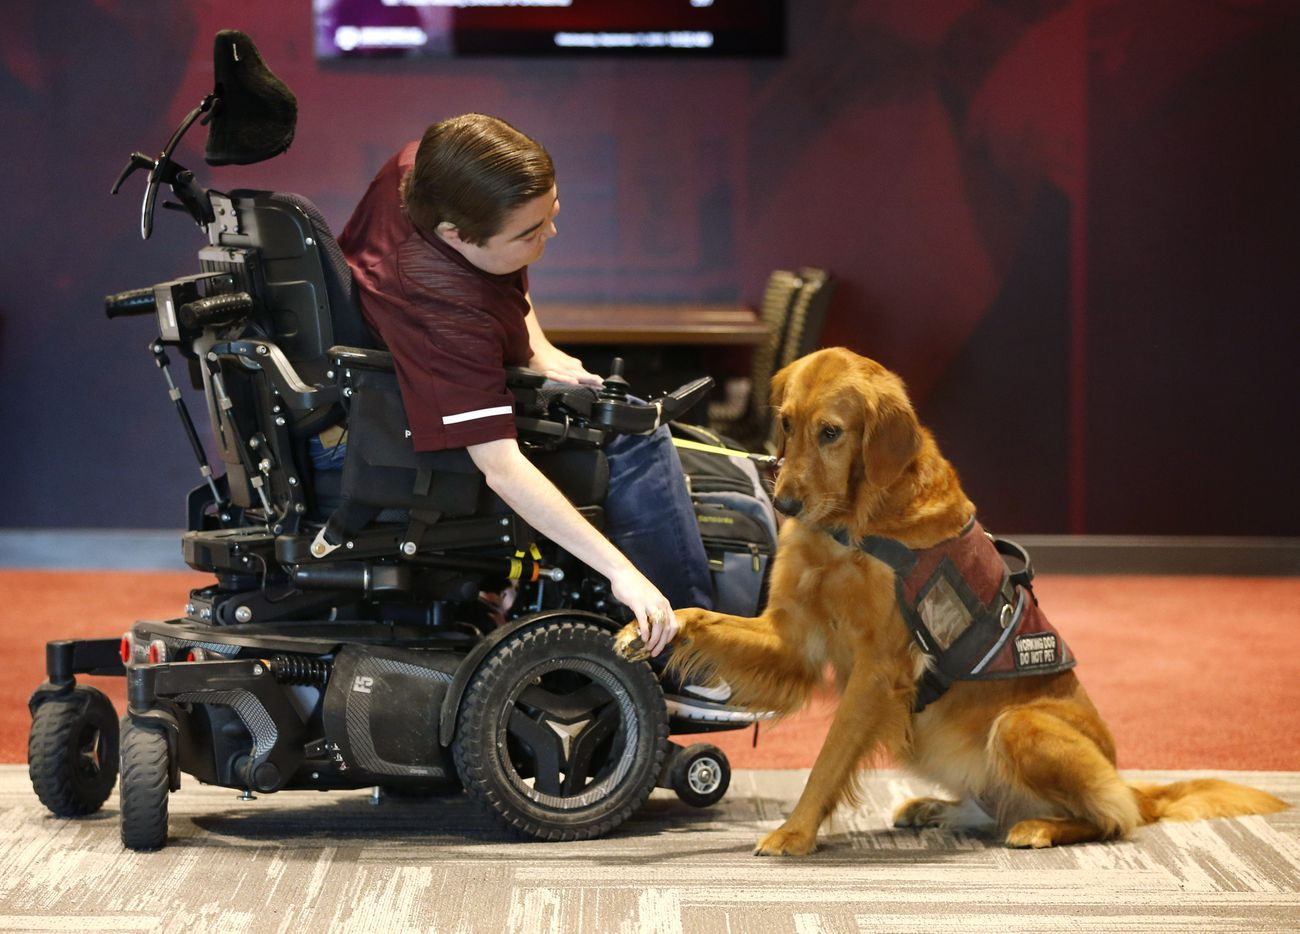 Texas A&M graduate student Kyle Cox, who has Duchenne Muscular Dystrophy, shakes Amber's paw before heading to symphonic band rehearsal at the new Music Activities Center on the Texas A&M campus in College Station, Texas, Wednesday, September 11, 2019.